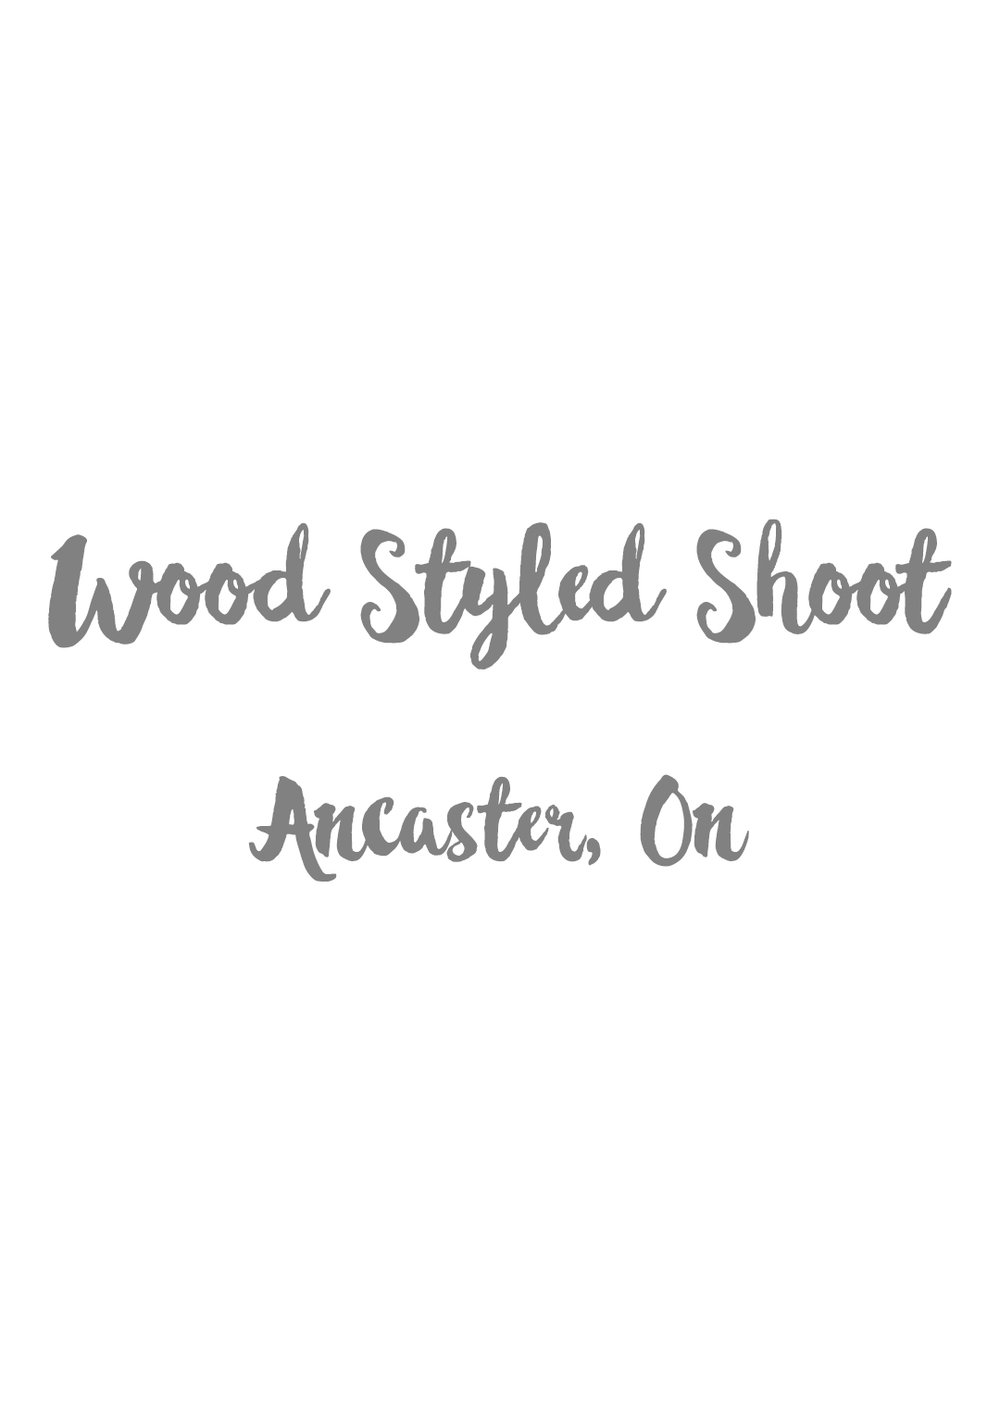 Wood shoot title.jpg